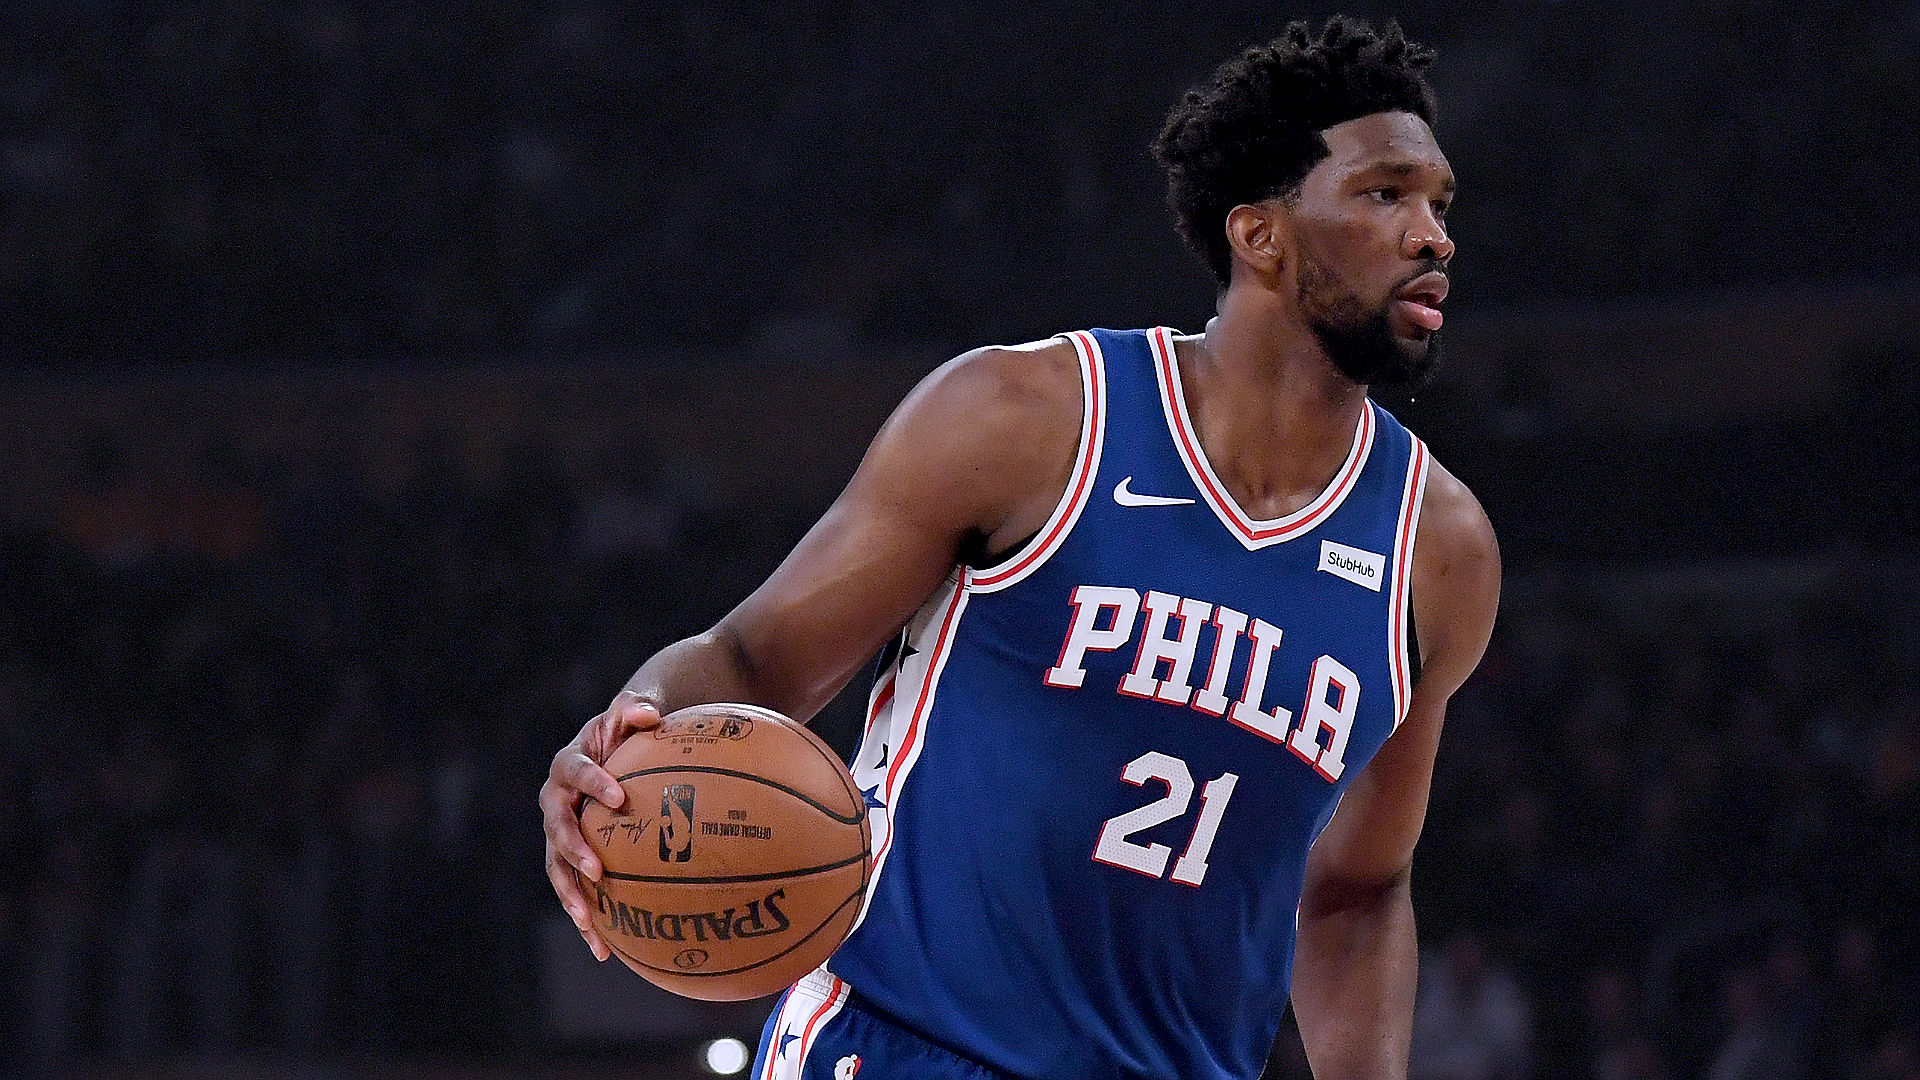 NBA playoffs 2019: Joel Embiid addresses cell phone incident during Game 1 loss